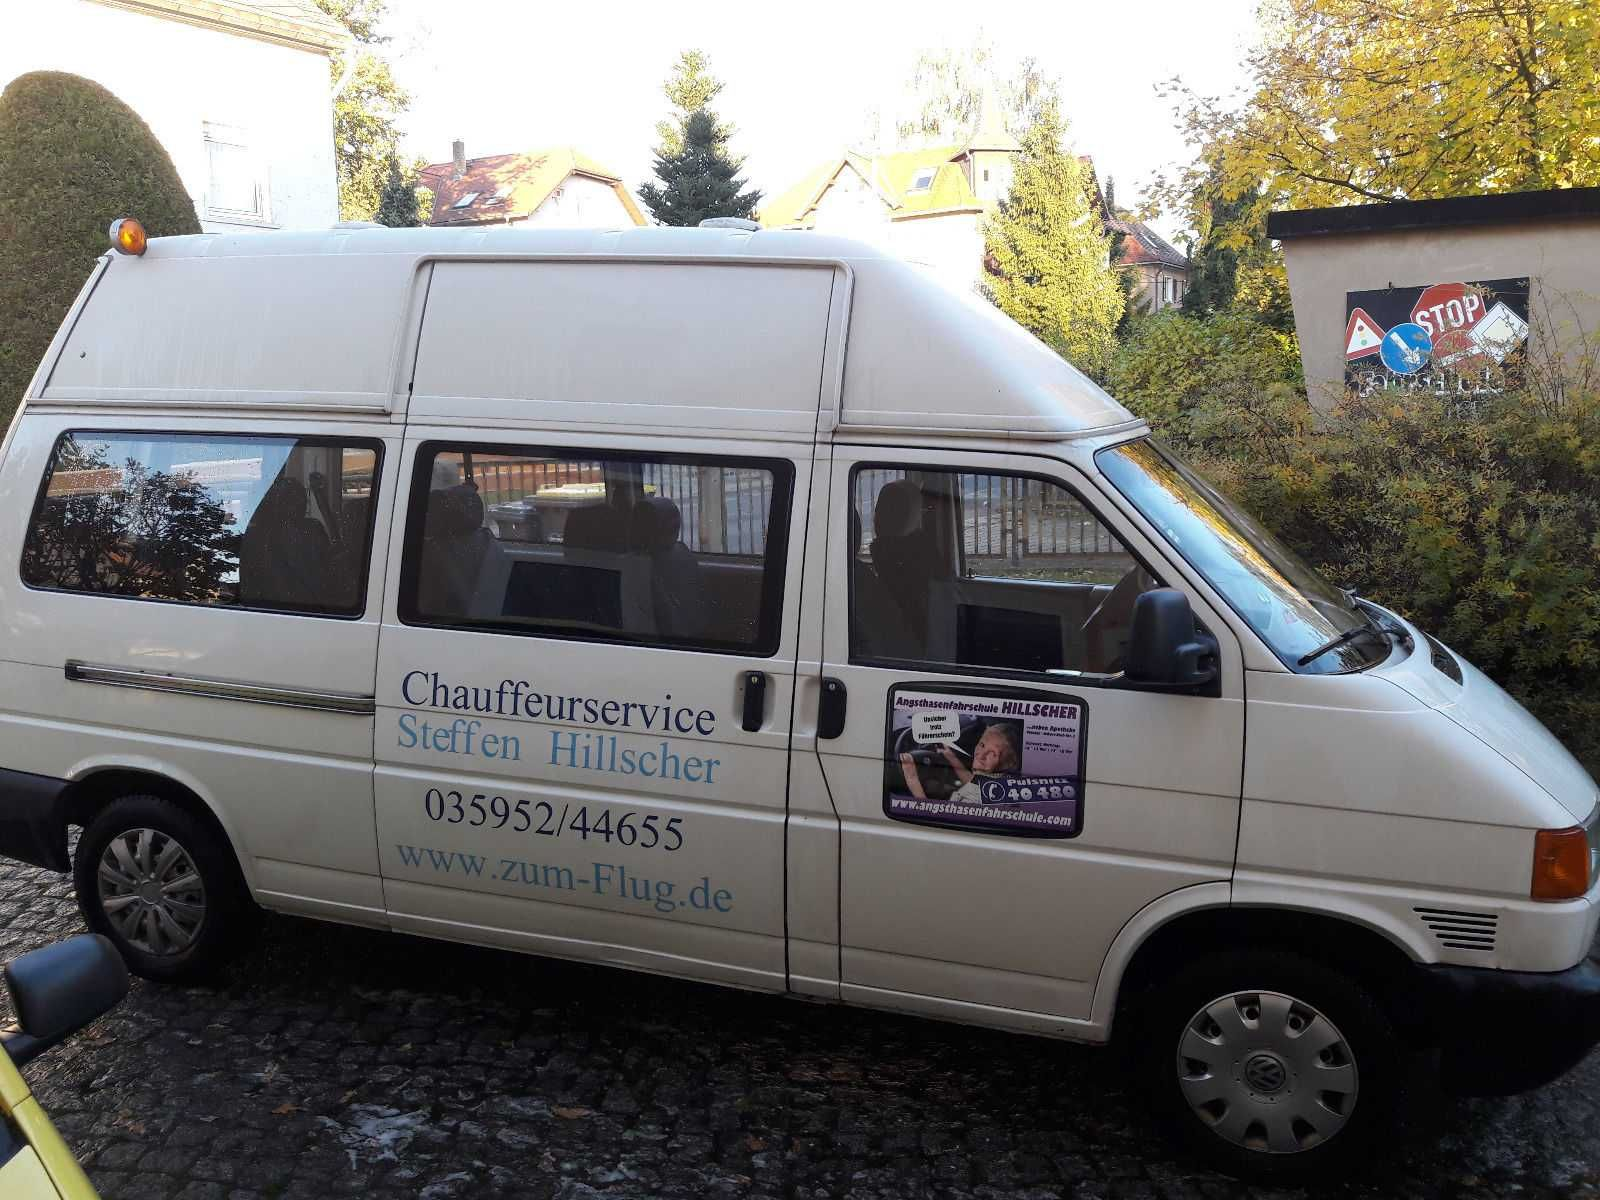 mobiles g nstiger vw t4 hoch lang 9 sitzer bus transporter wegstreckenz hler. Black Bedroom Furniture Sets. Home Design Ideas